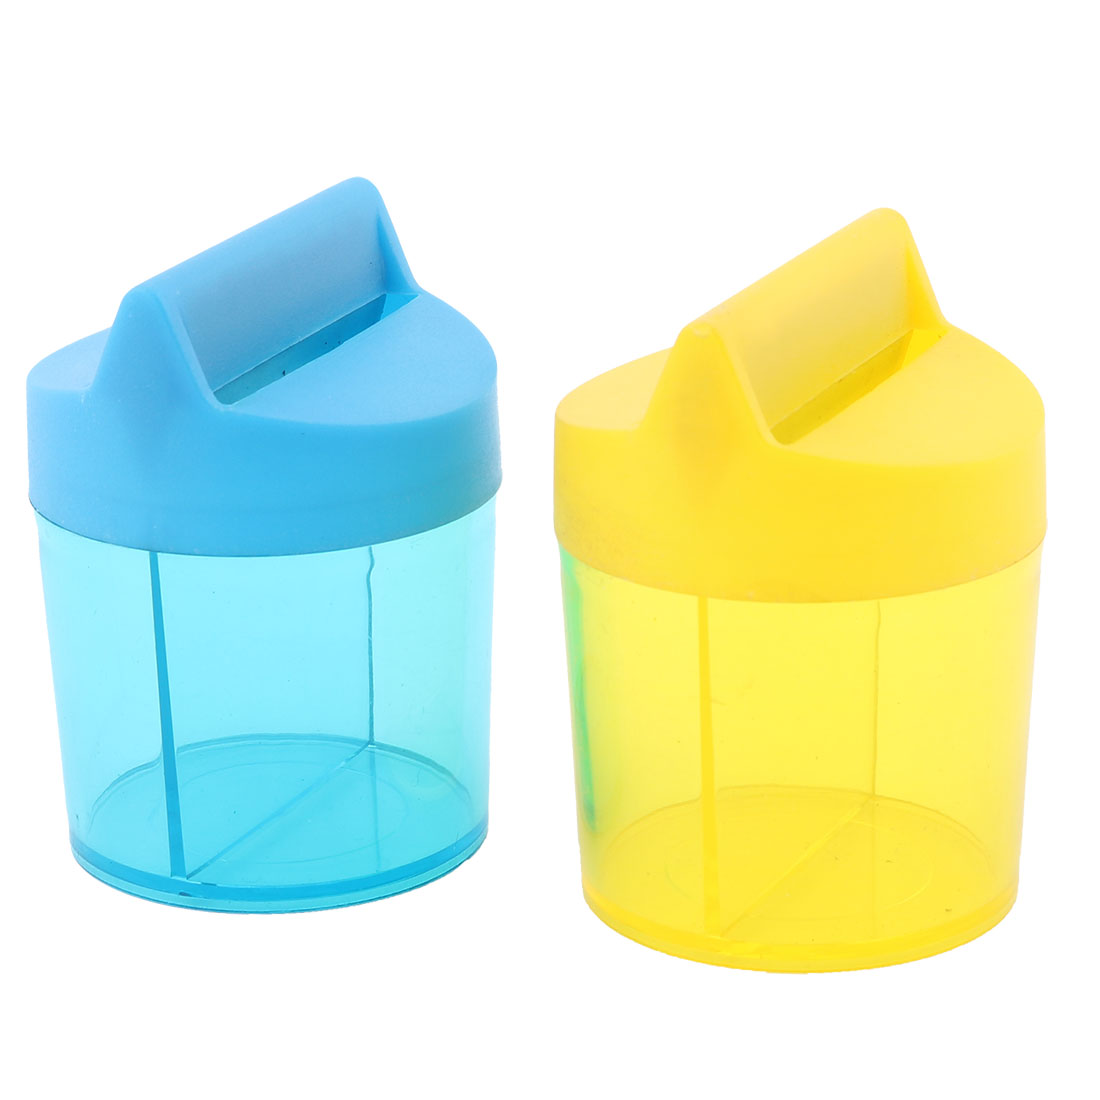 Student Office Plastic Round Shaped Paper Clip Dispenser Holder Box Case Yellow Blue 2pcs